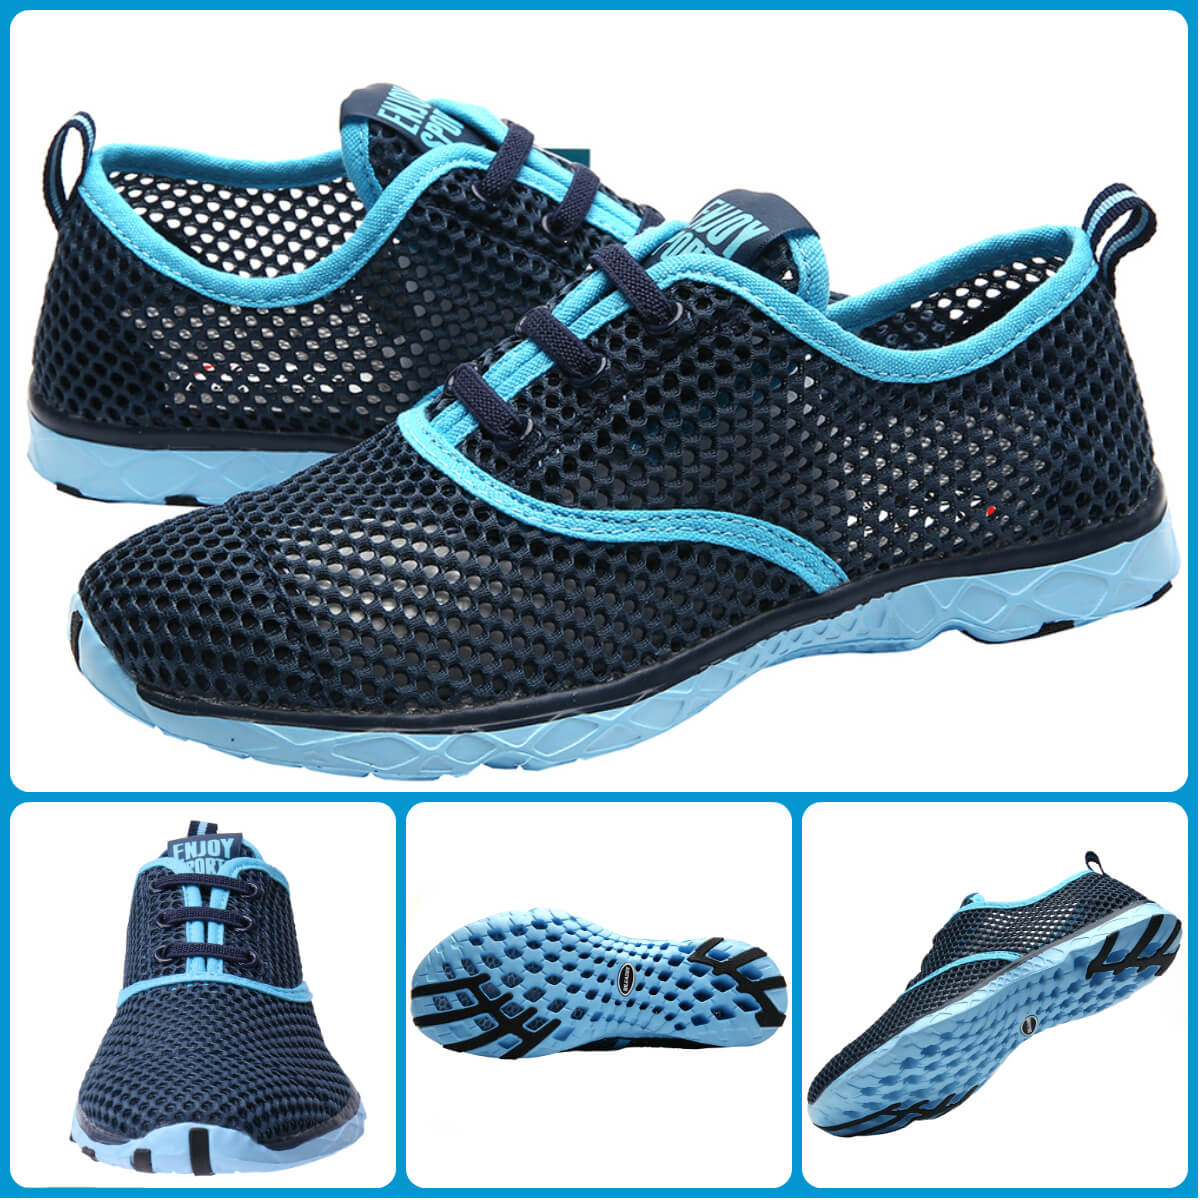 Aleader Women's Quick-drying Aqua Water Shoes